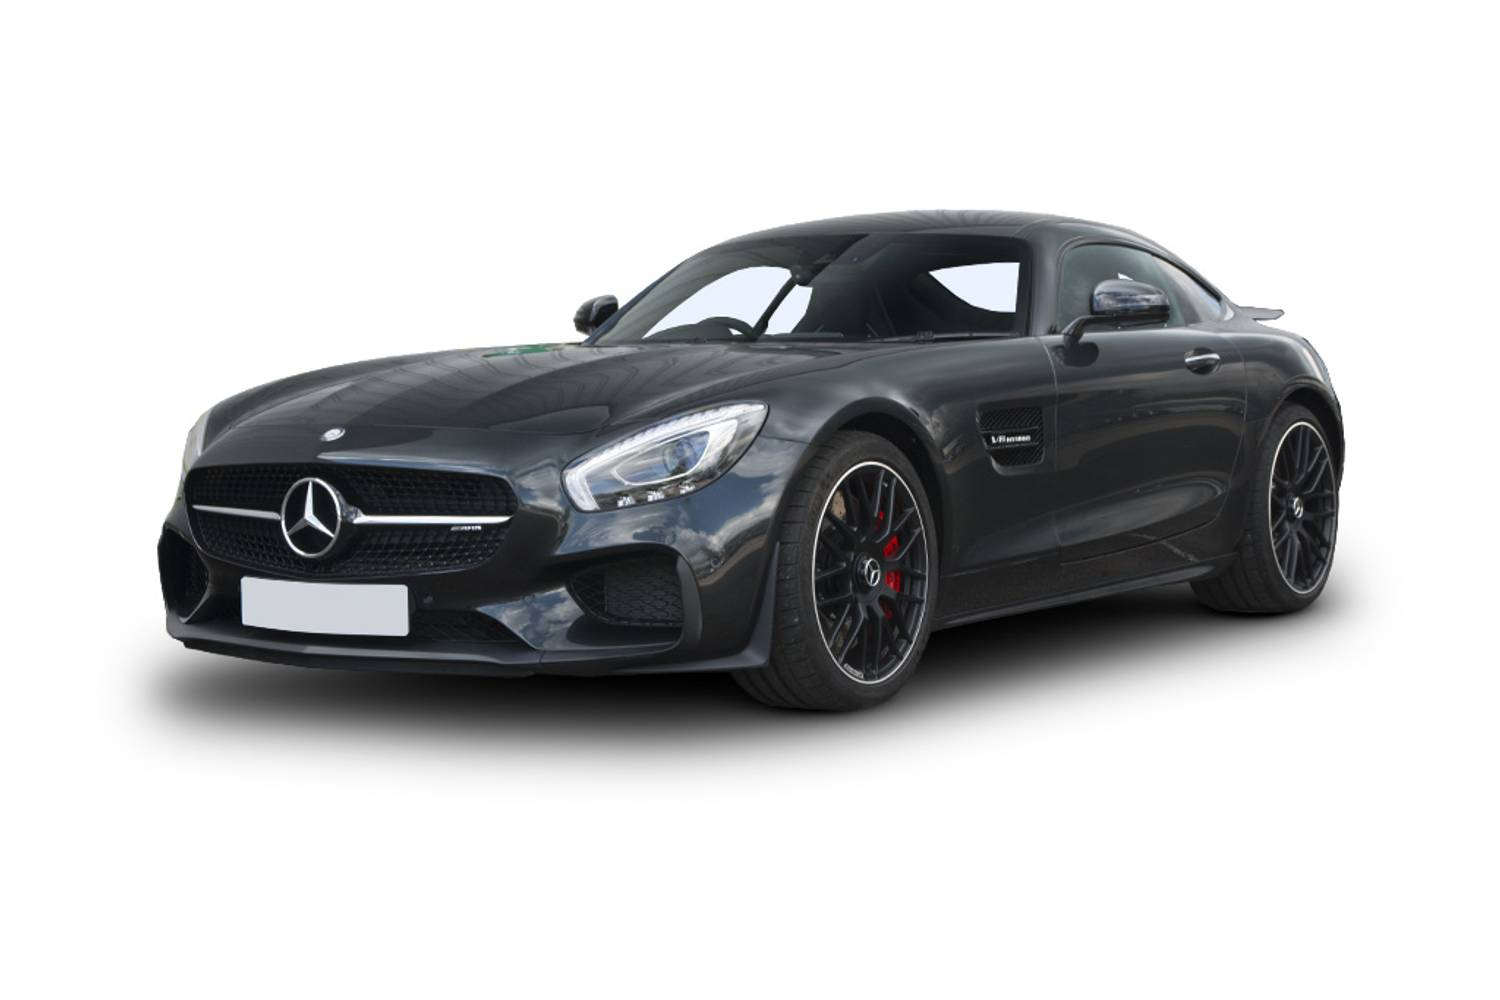 Mercedes Benz AMG GT Coupe GT Auto Front Three Quarter